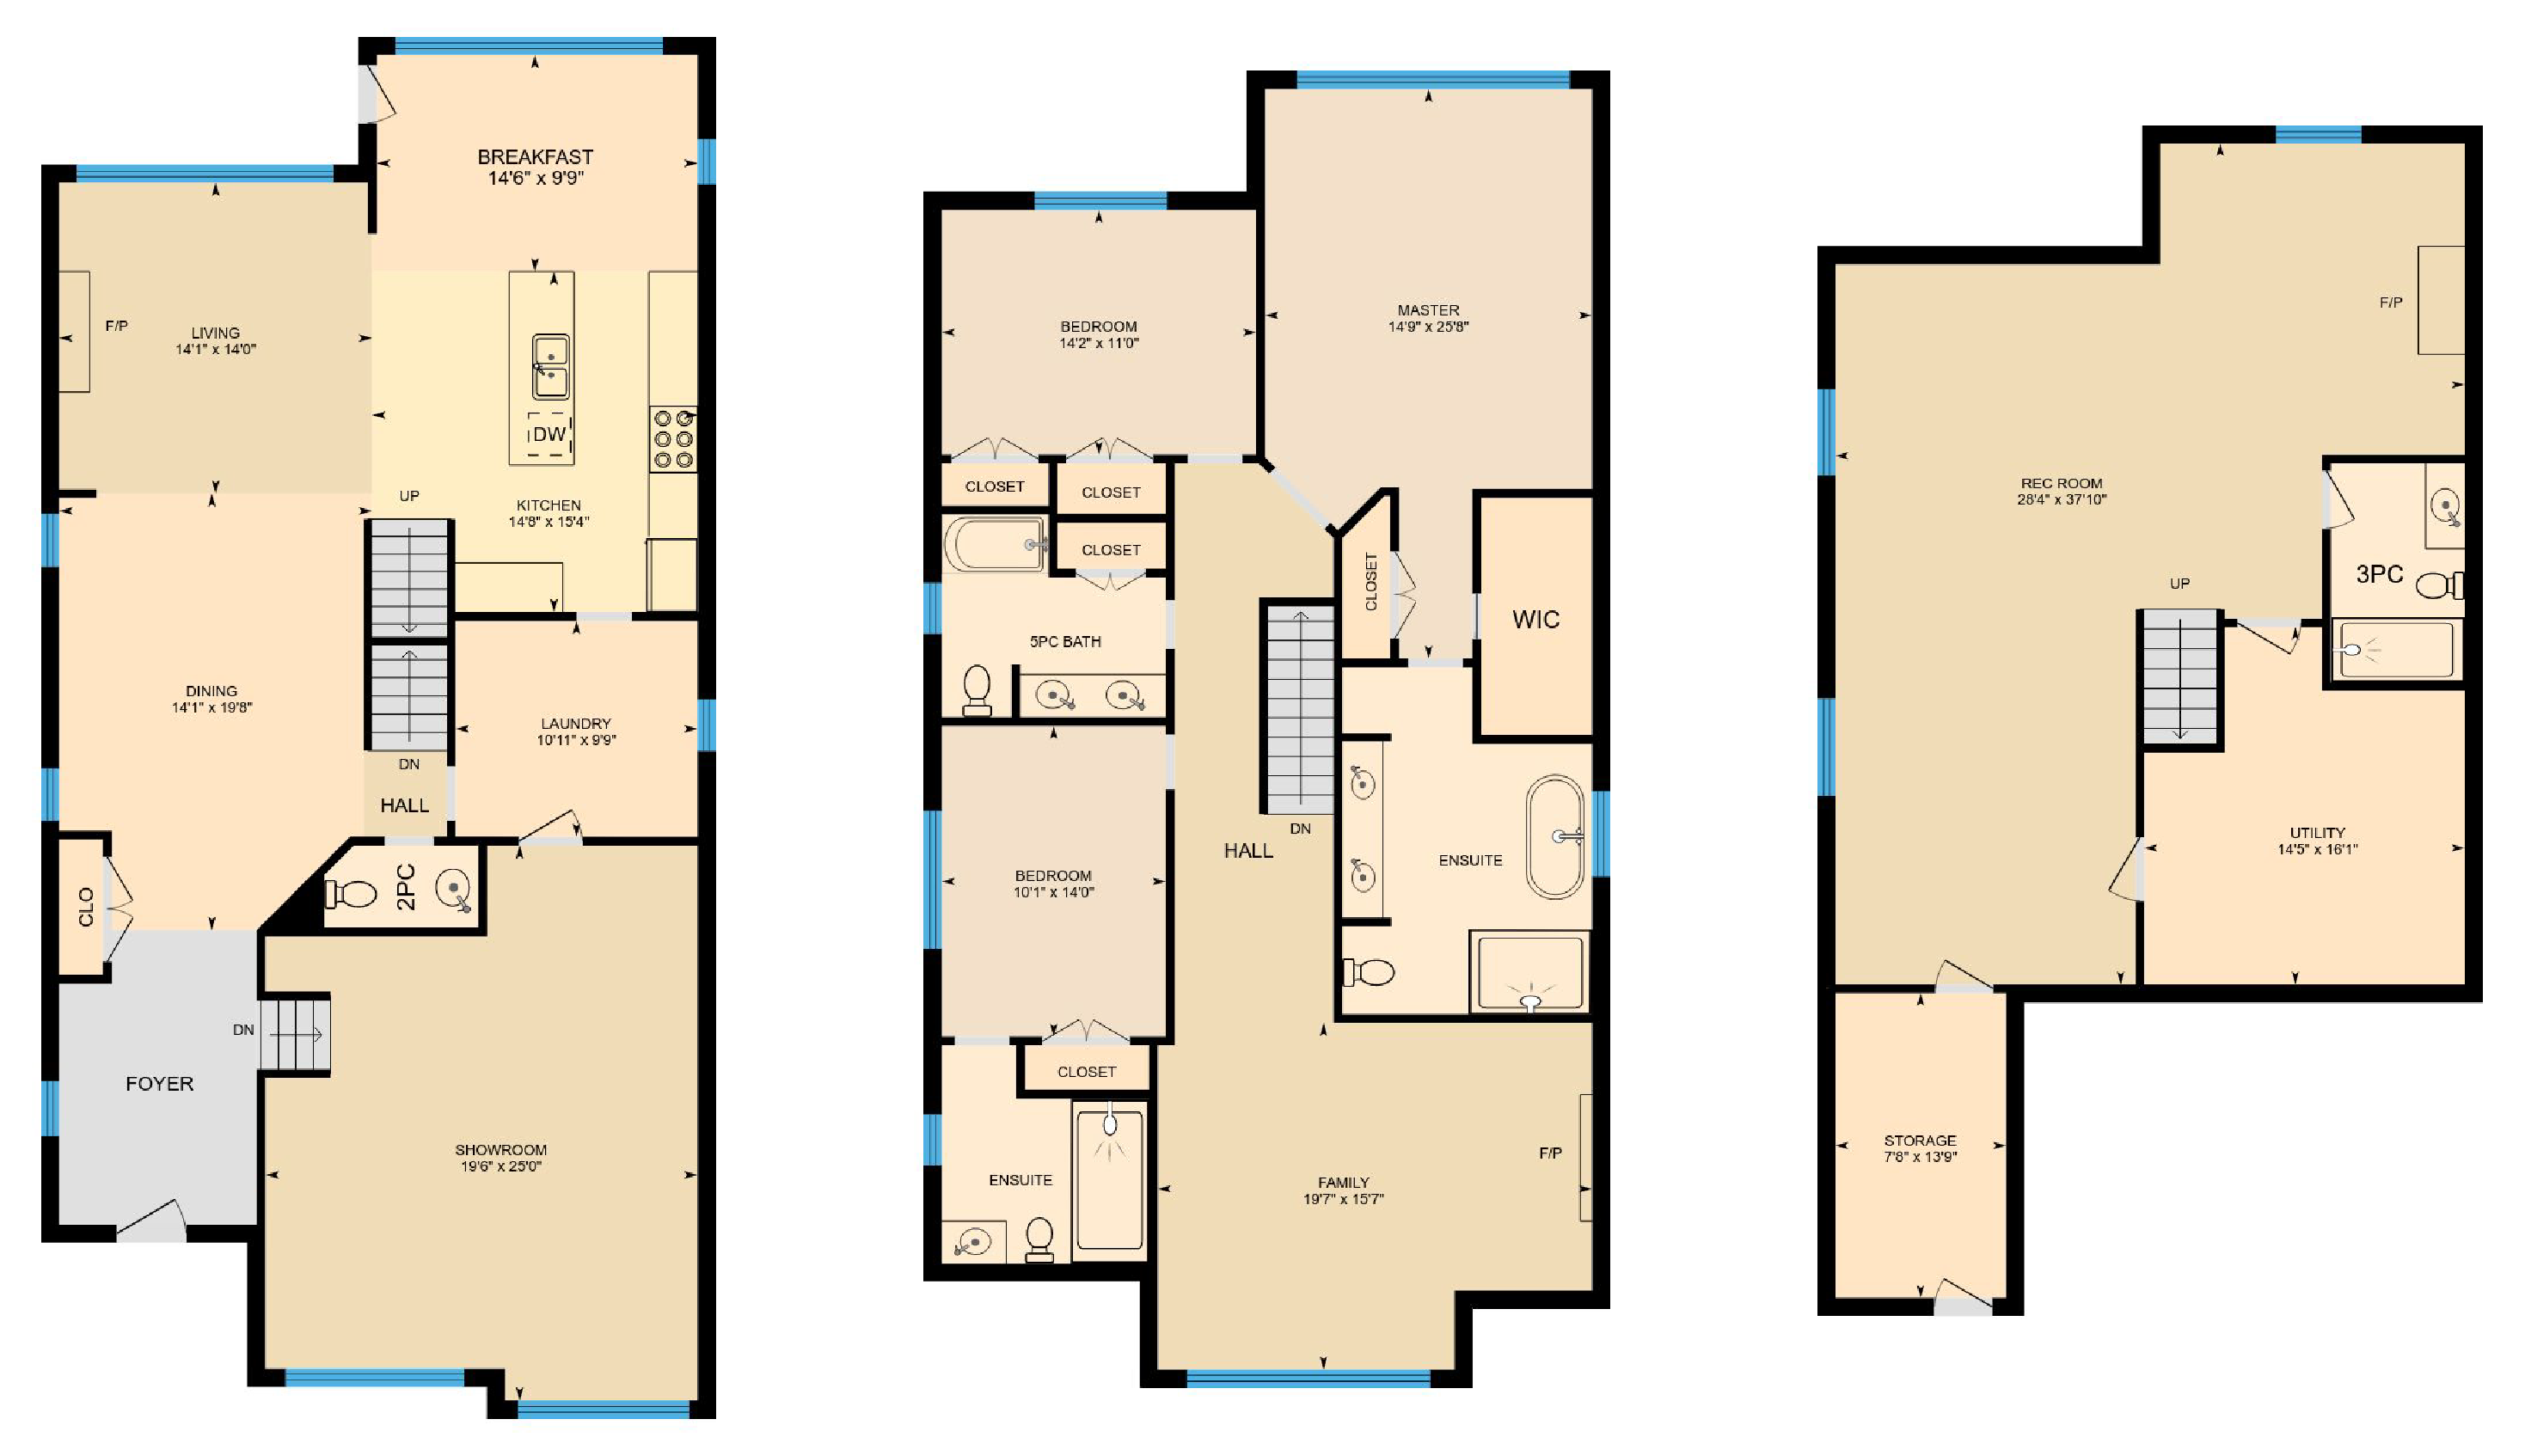 iGuide Multicolored Warm Floor Plan Colors - Square Feet Photography and Floor Plans